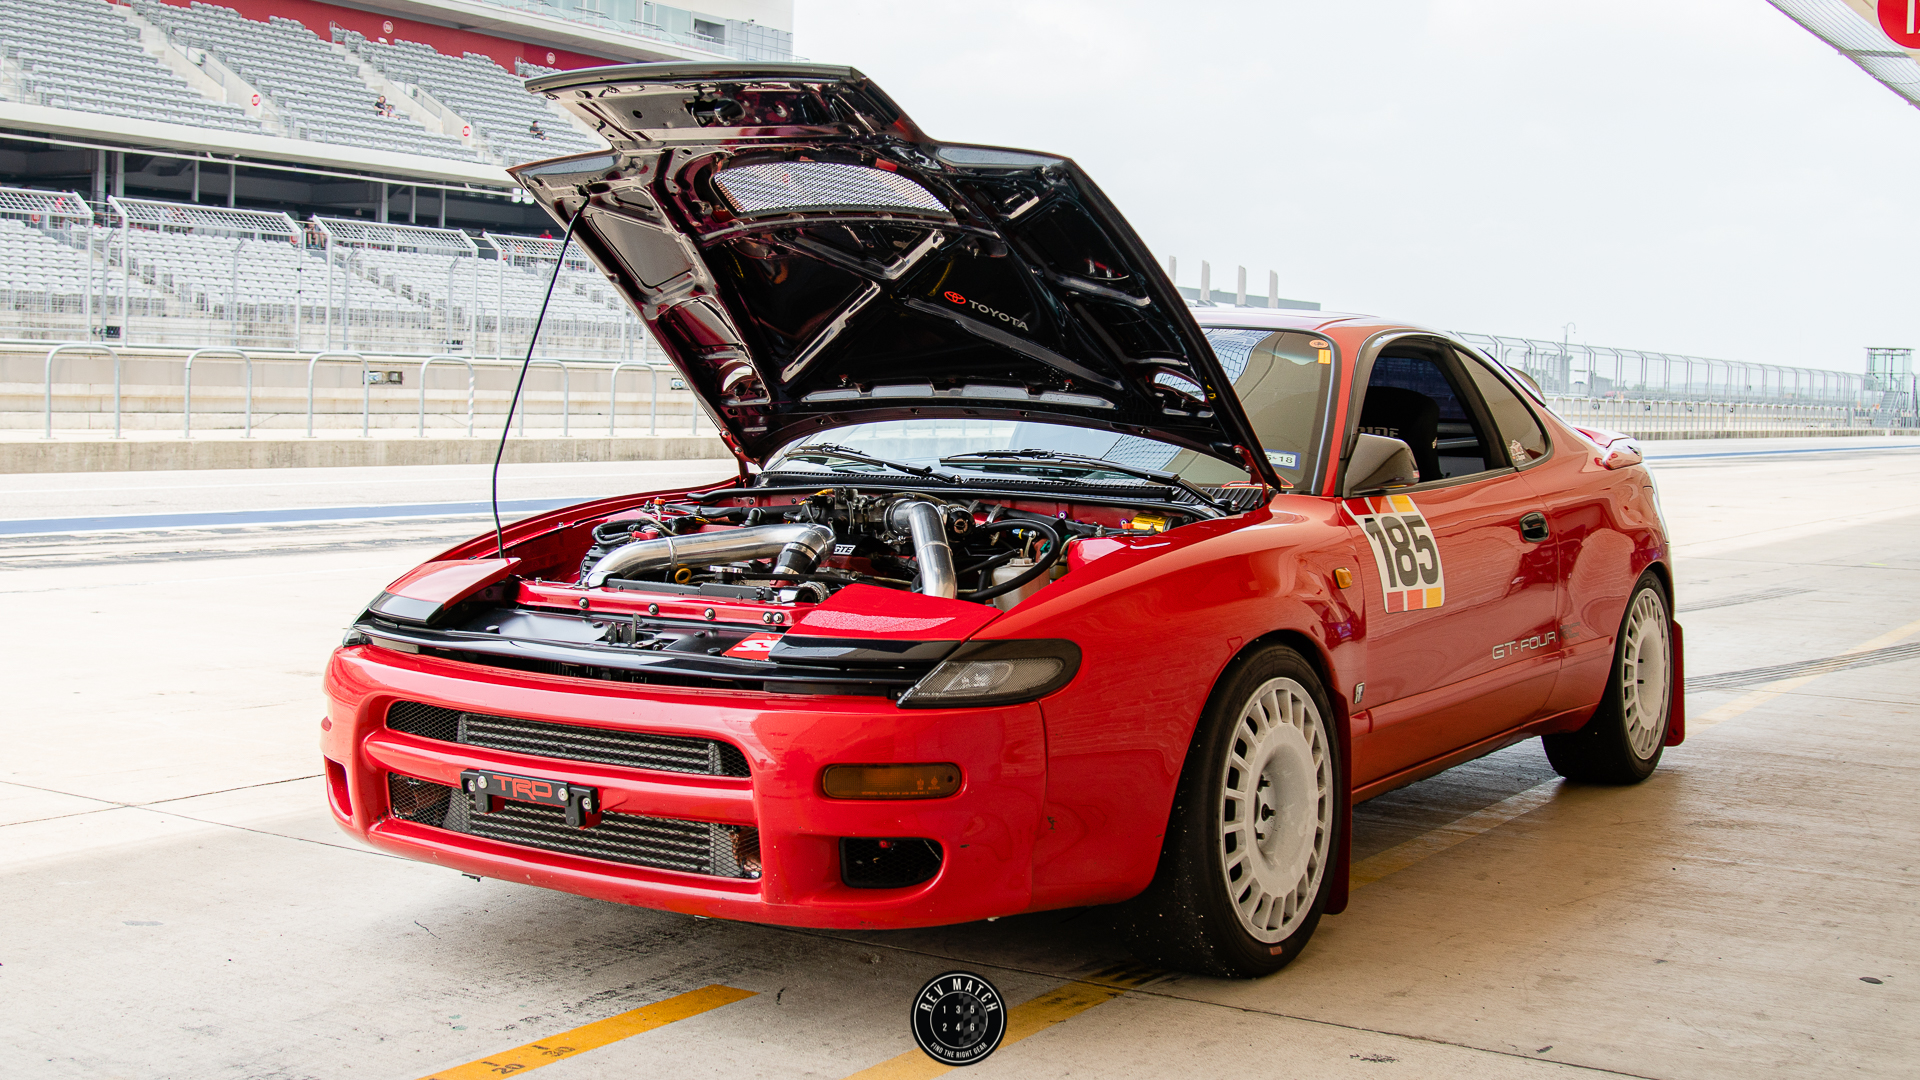 Edge Addict COTA May 2019 Rev Match Media-152.jpg